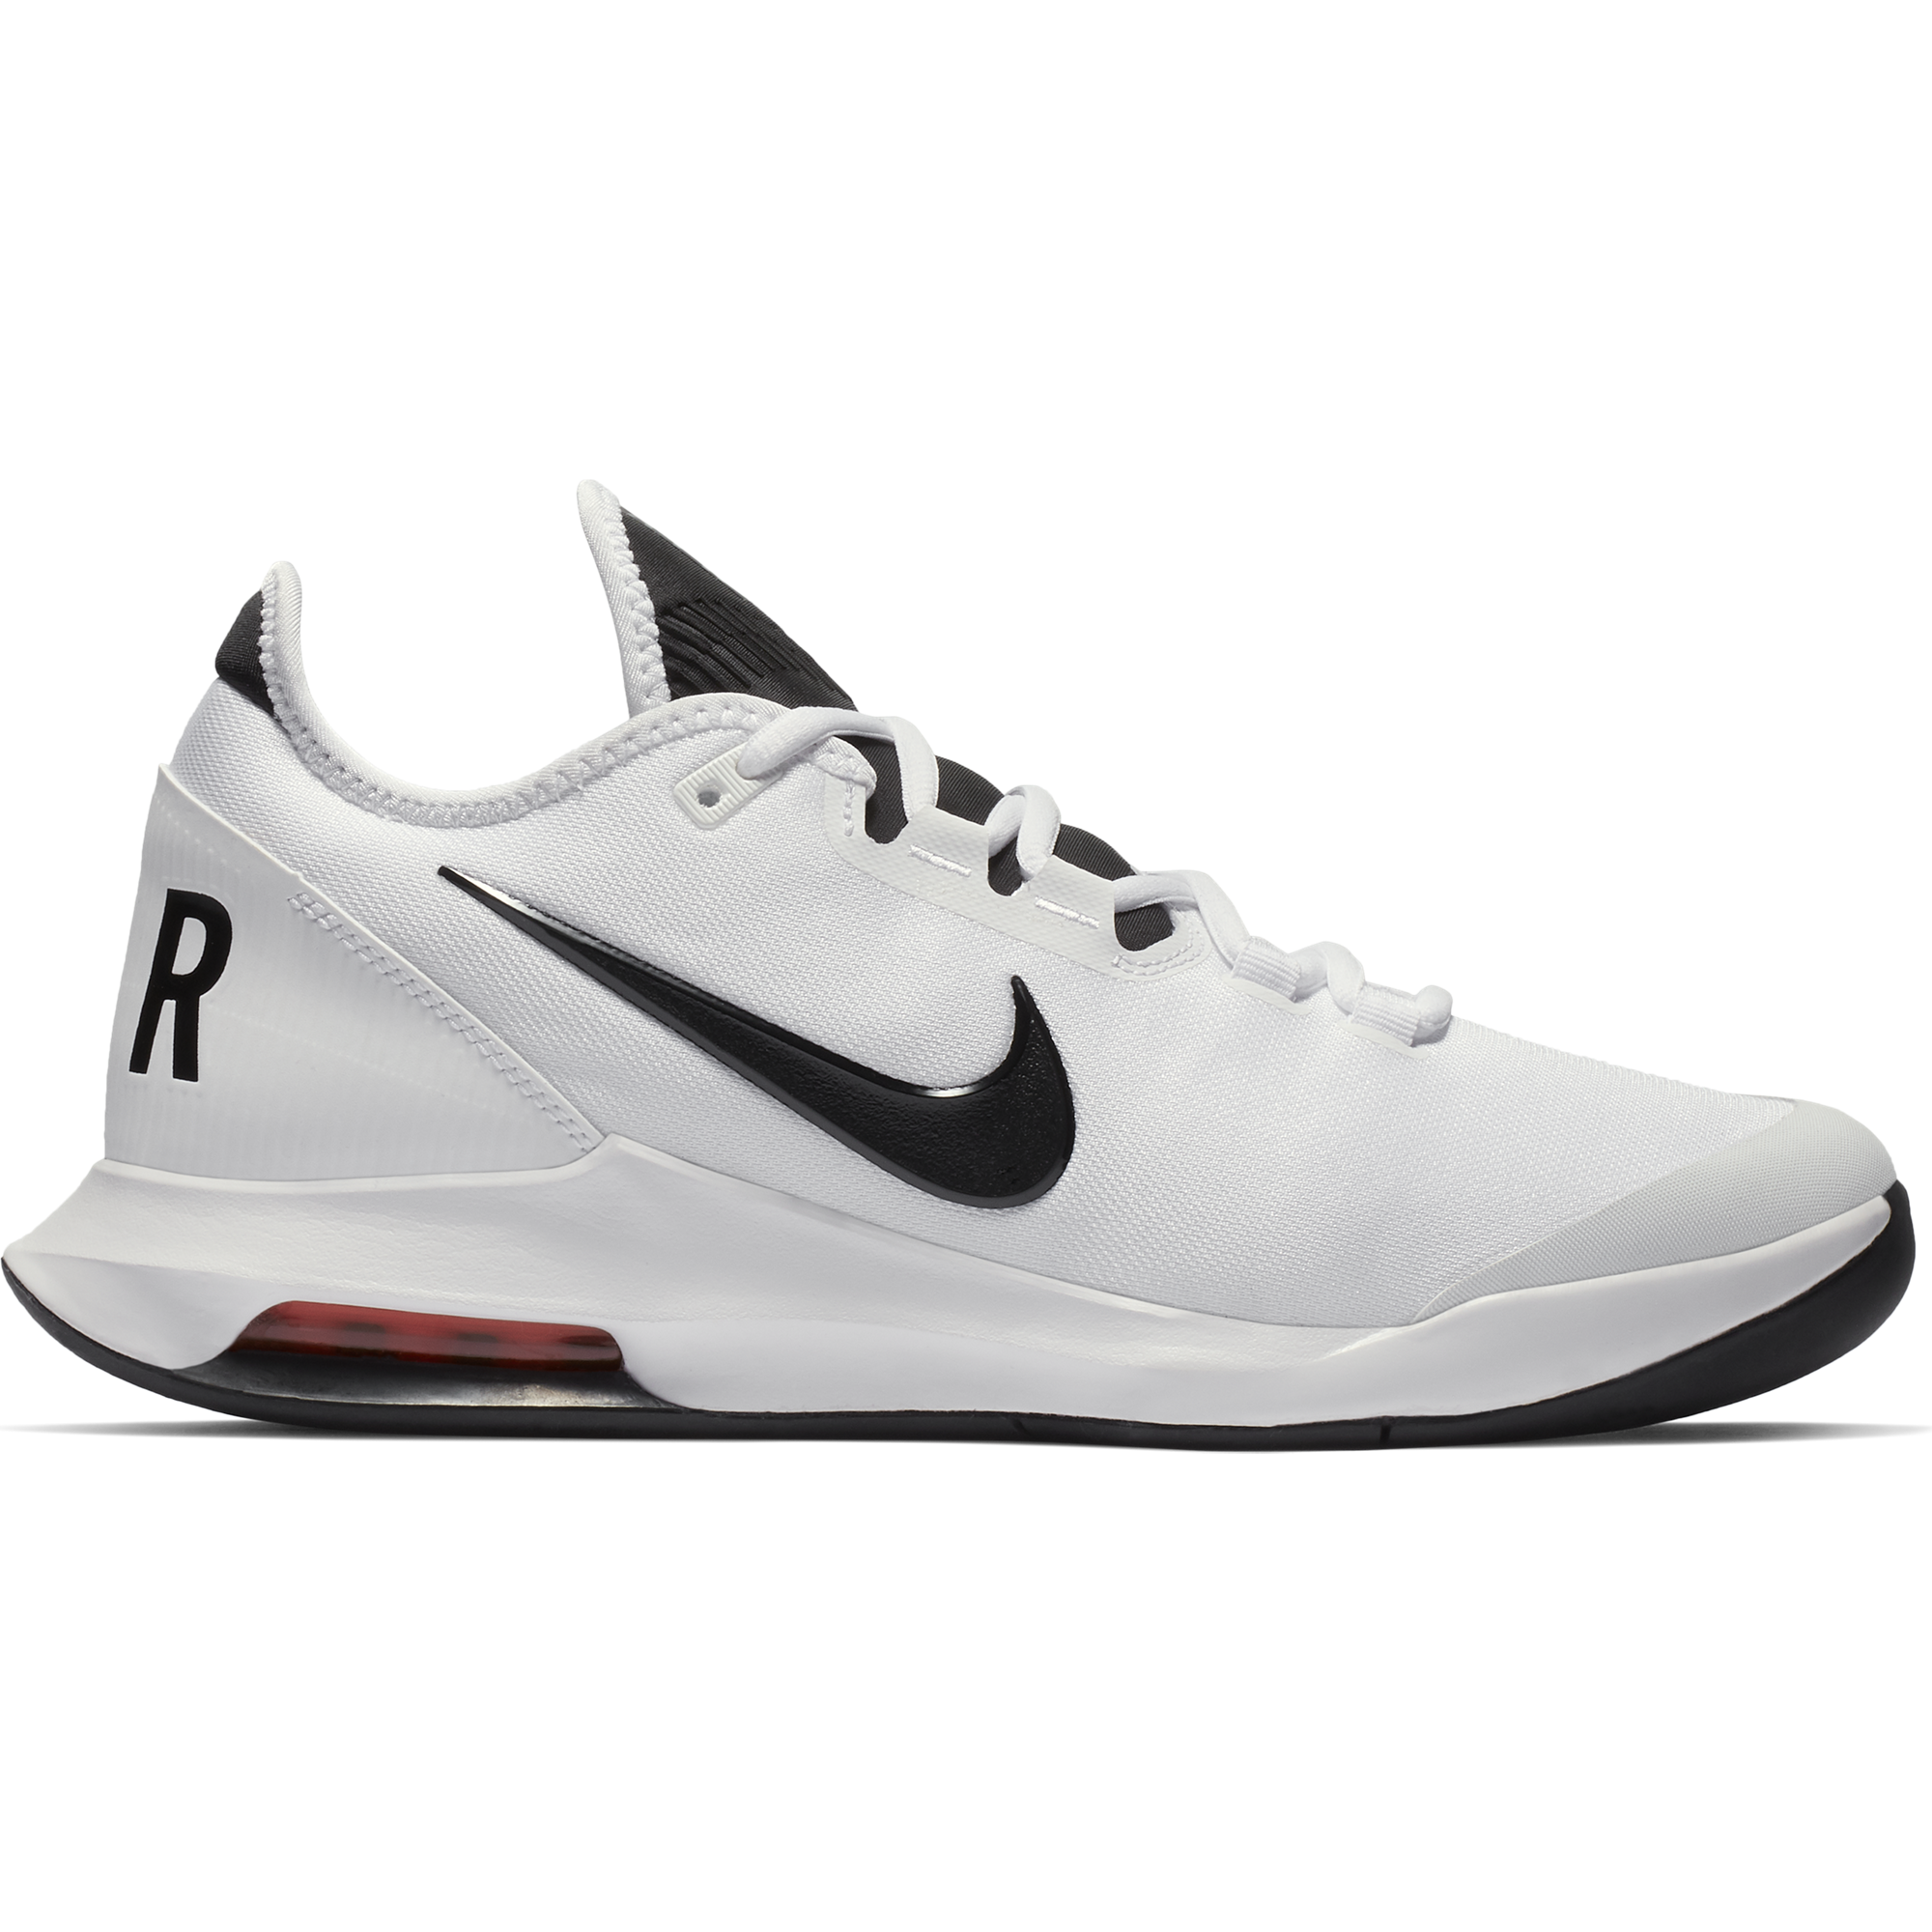 new arrivals d78ff 1f652 Nike Air Max Wildcard Men s Tennis Shoe - White Black Red   PGA TOUR  Superstore